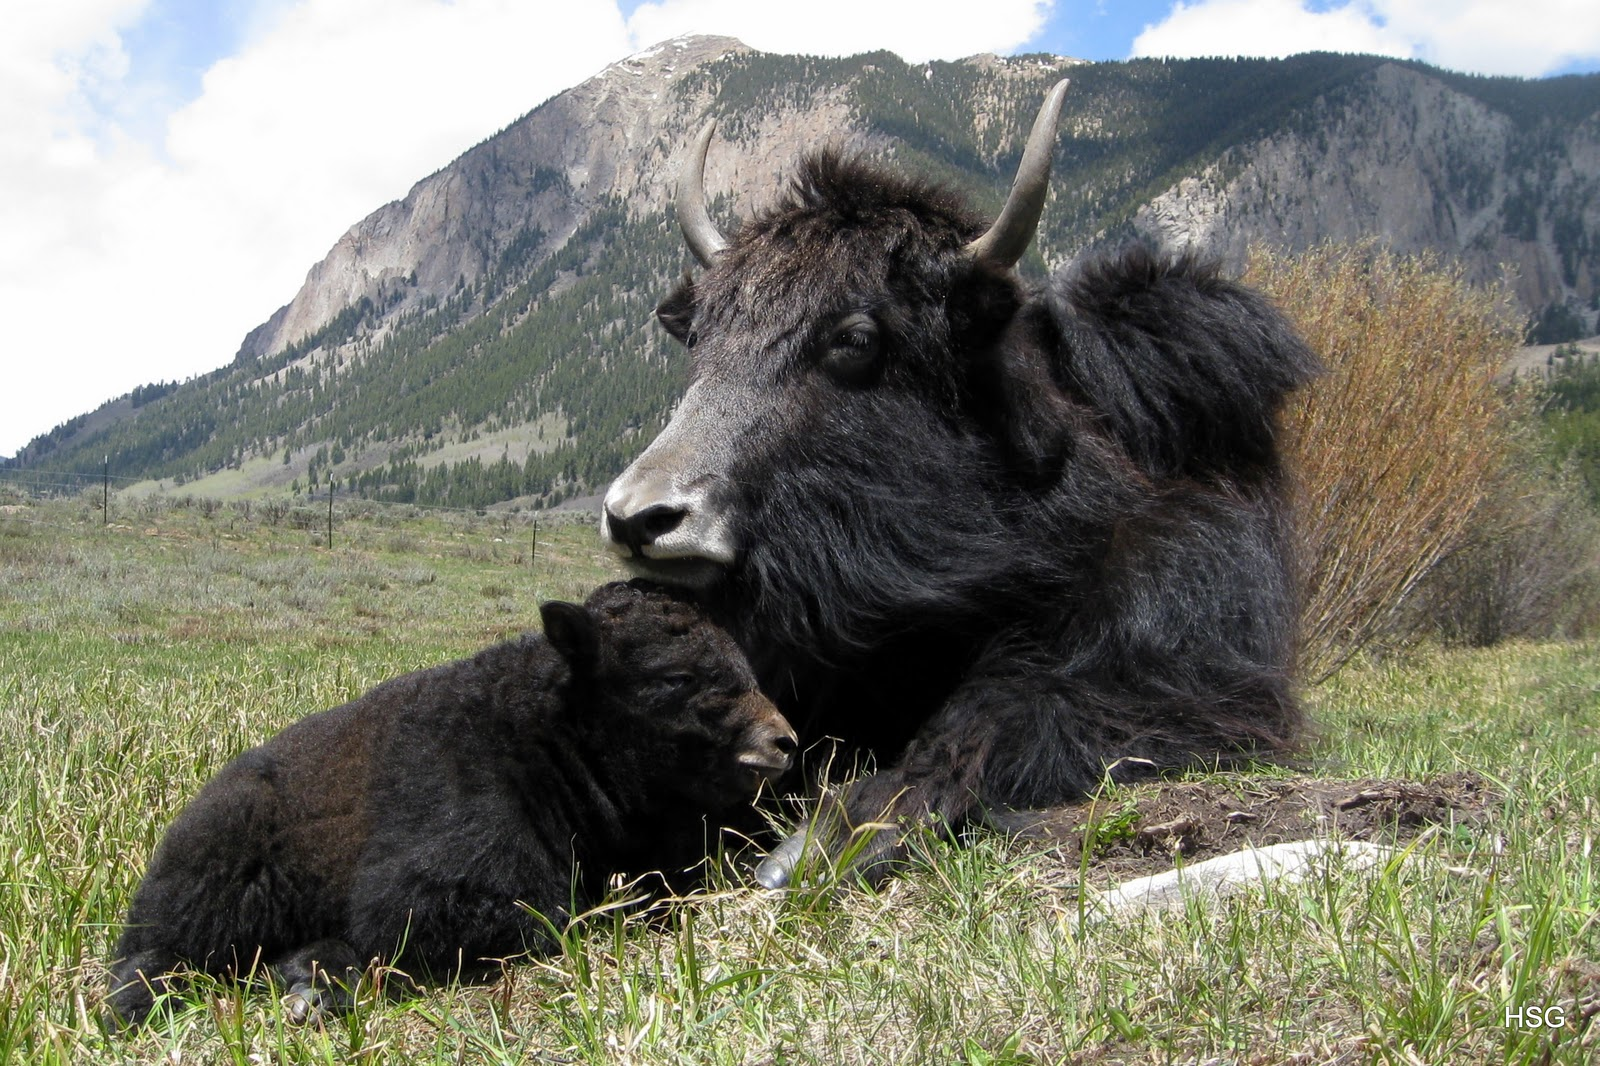 Image Of A Yak: The Life Of Animals